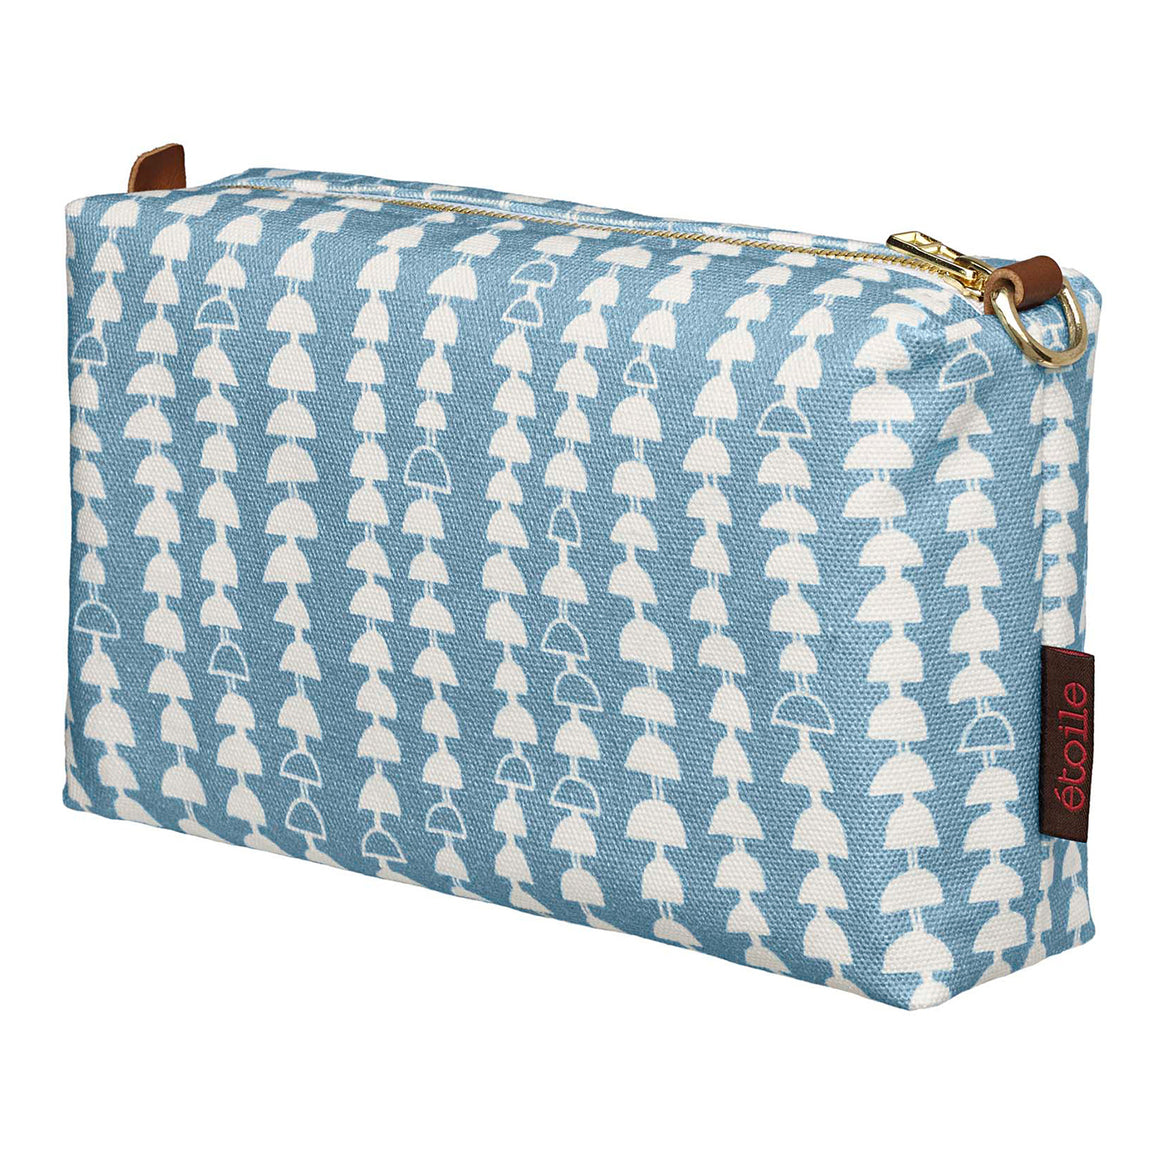 Hopi Graphic Pattern Canvas Toiletry Travel Bag Light Chambray Blue Ships from Canada Perfect for cosmetics, shaving and wash kit